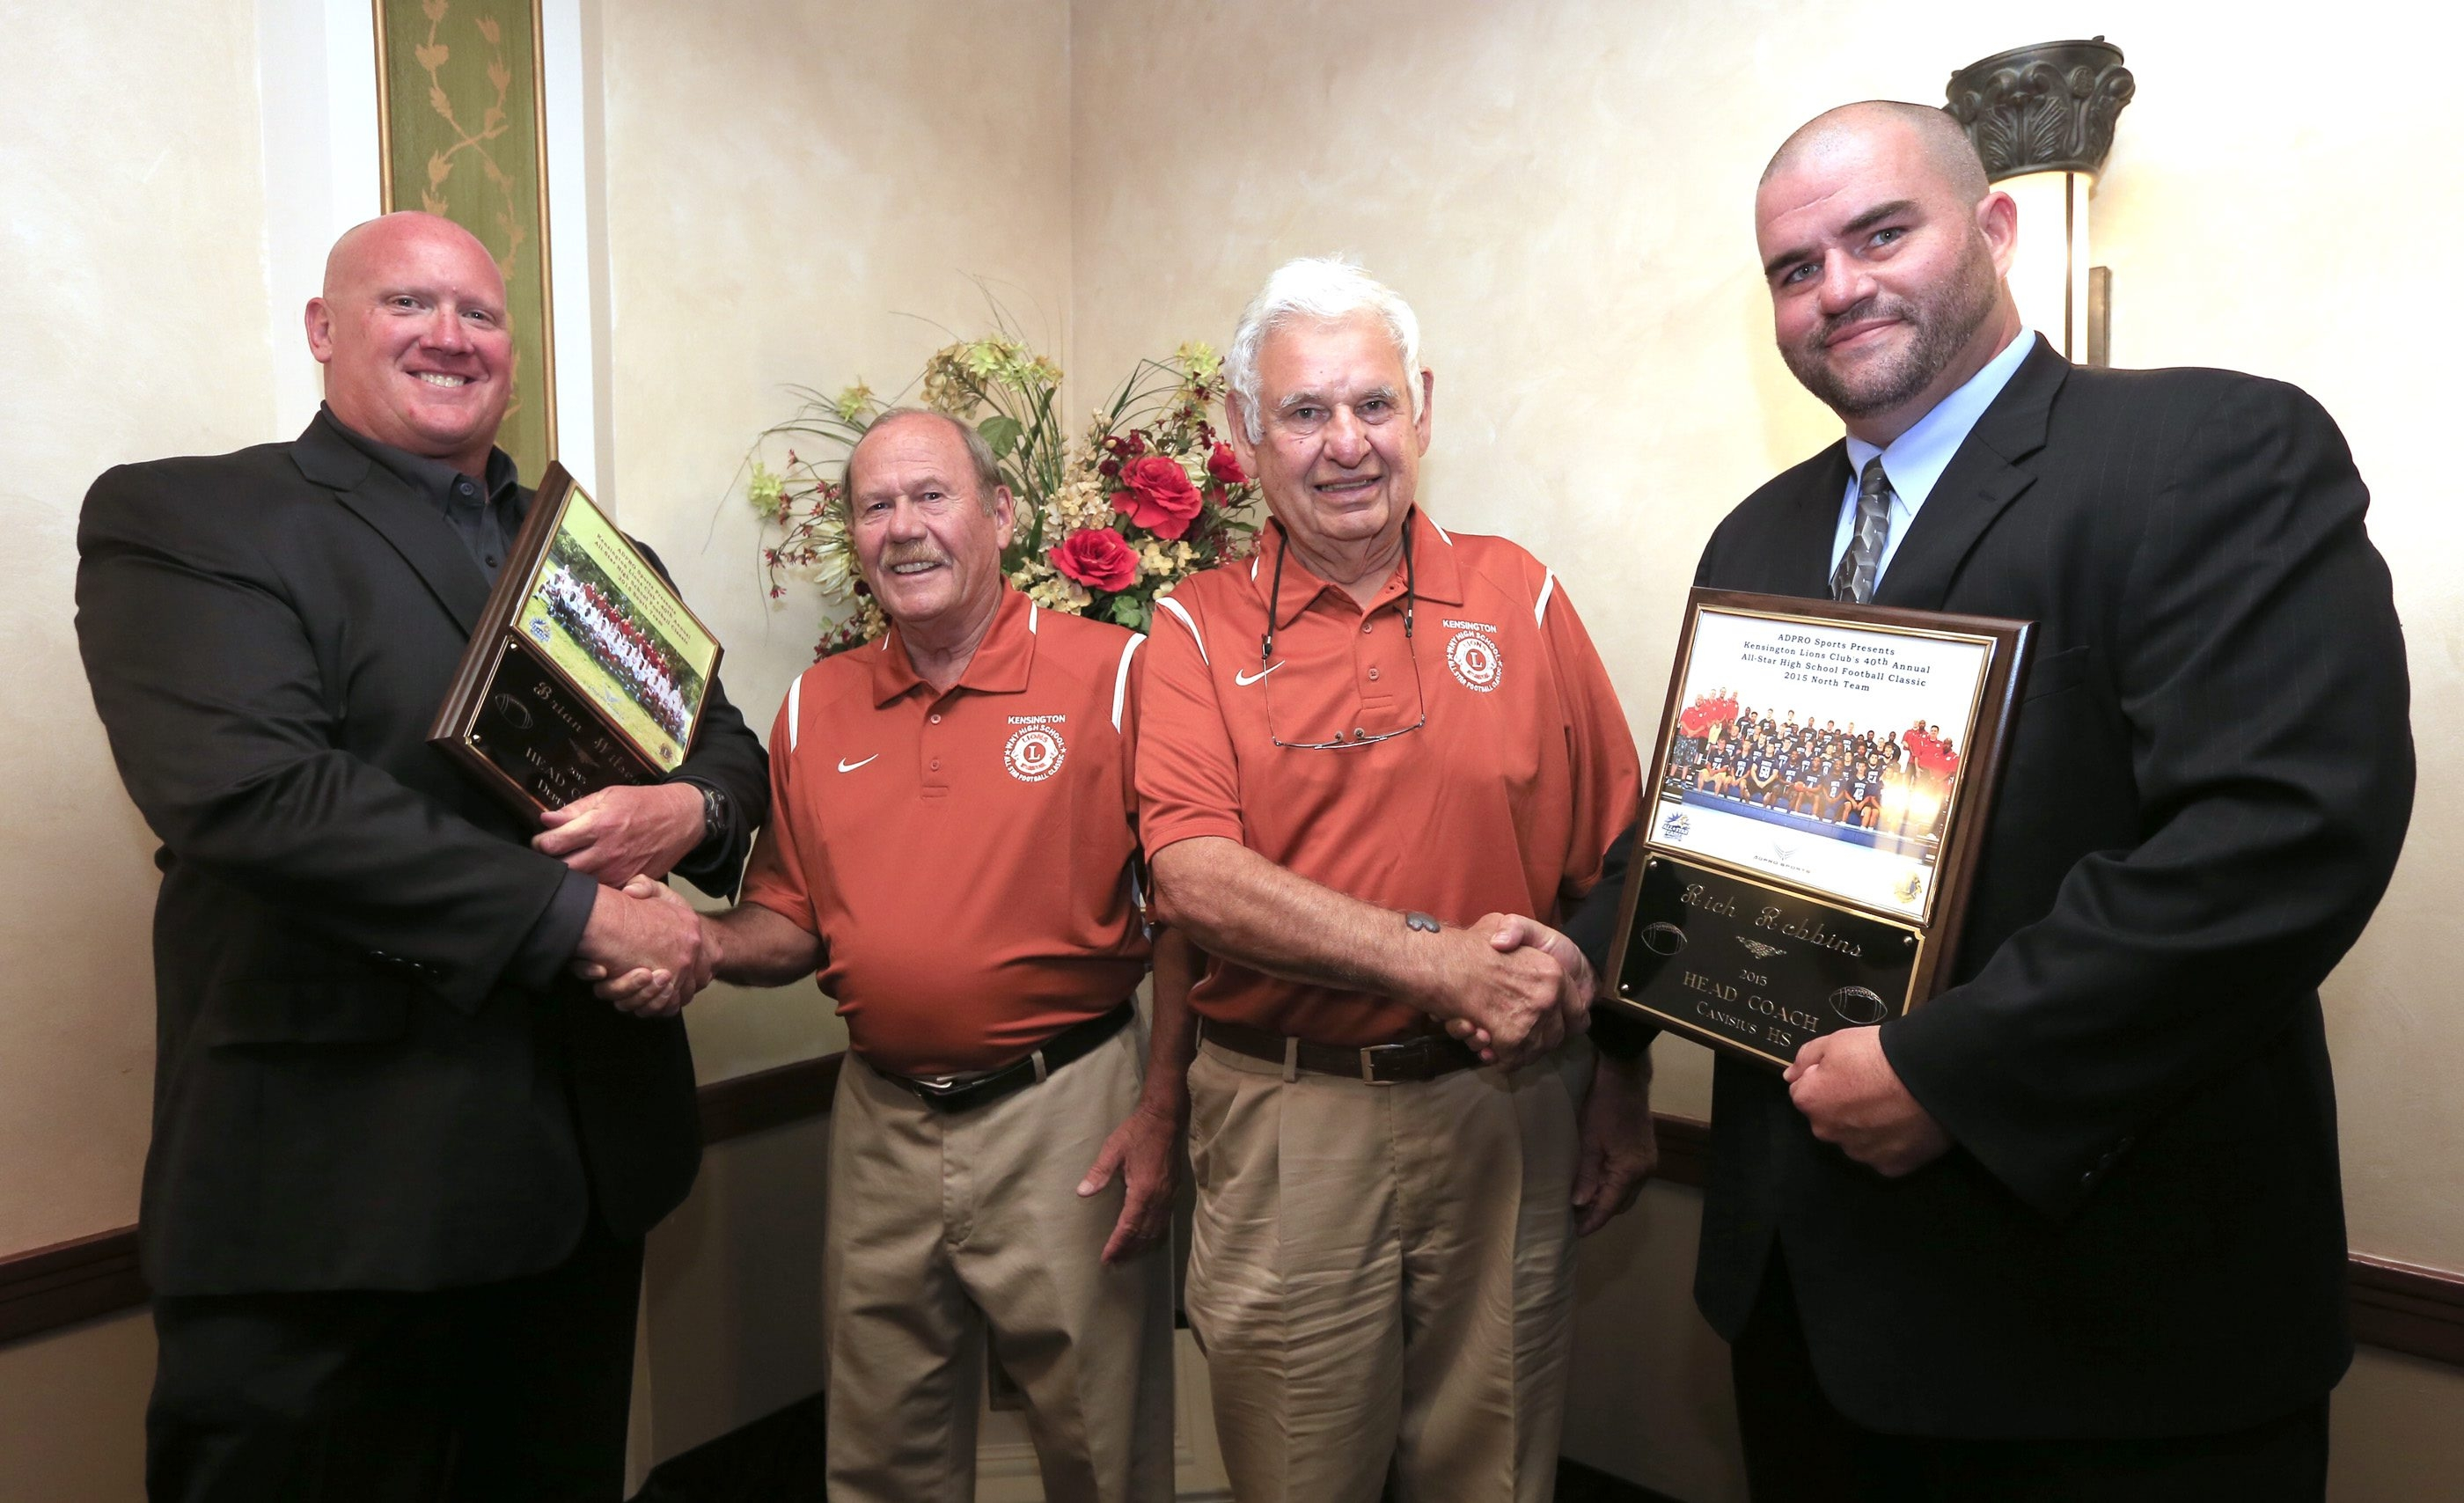 Lions Club All-Star game backers Milt Dickerson, second from left, and Gene Zinni present South coach Brian Wilson, left, and North Coach Rich Robbins, right, plaques Tuesday's at Ilio DiPaolo's restaurant.